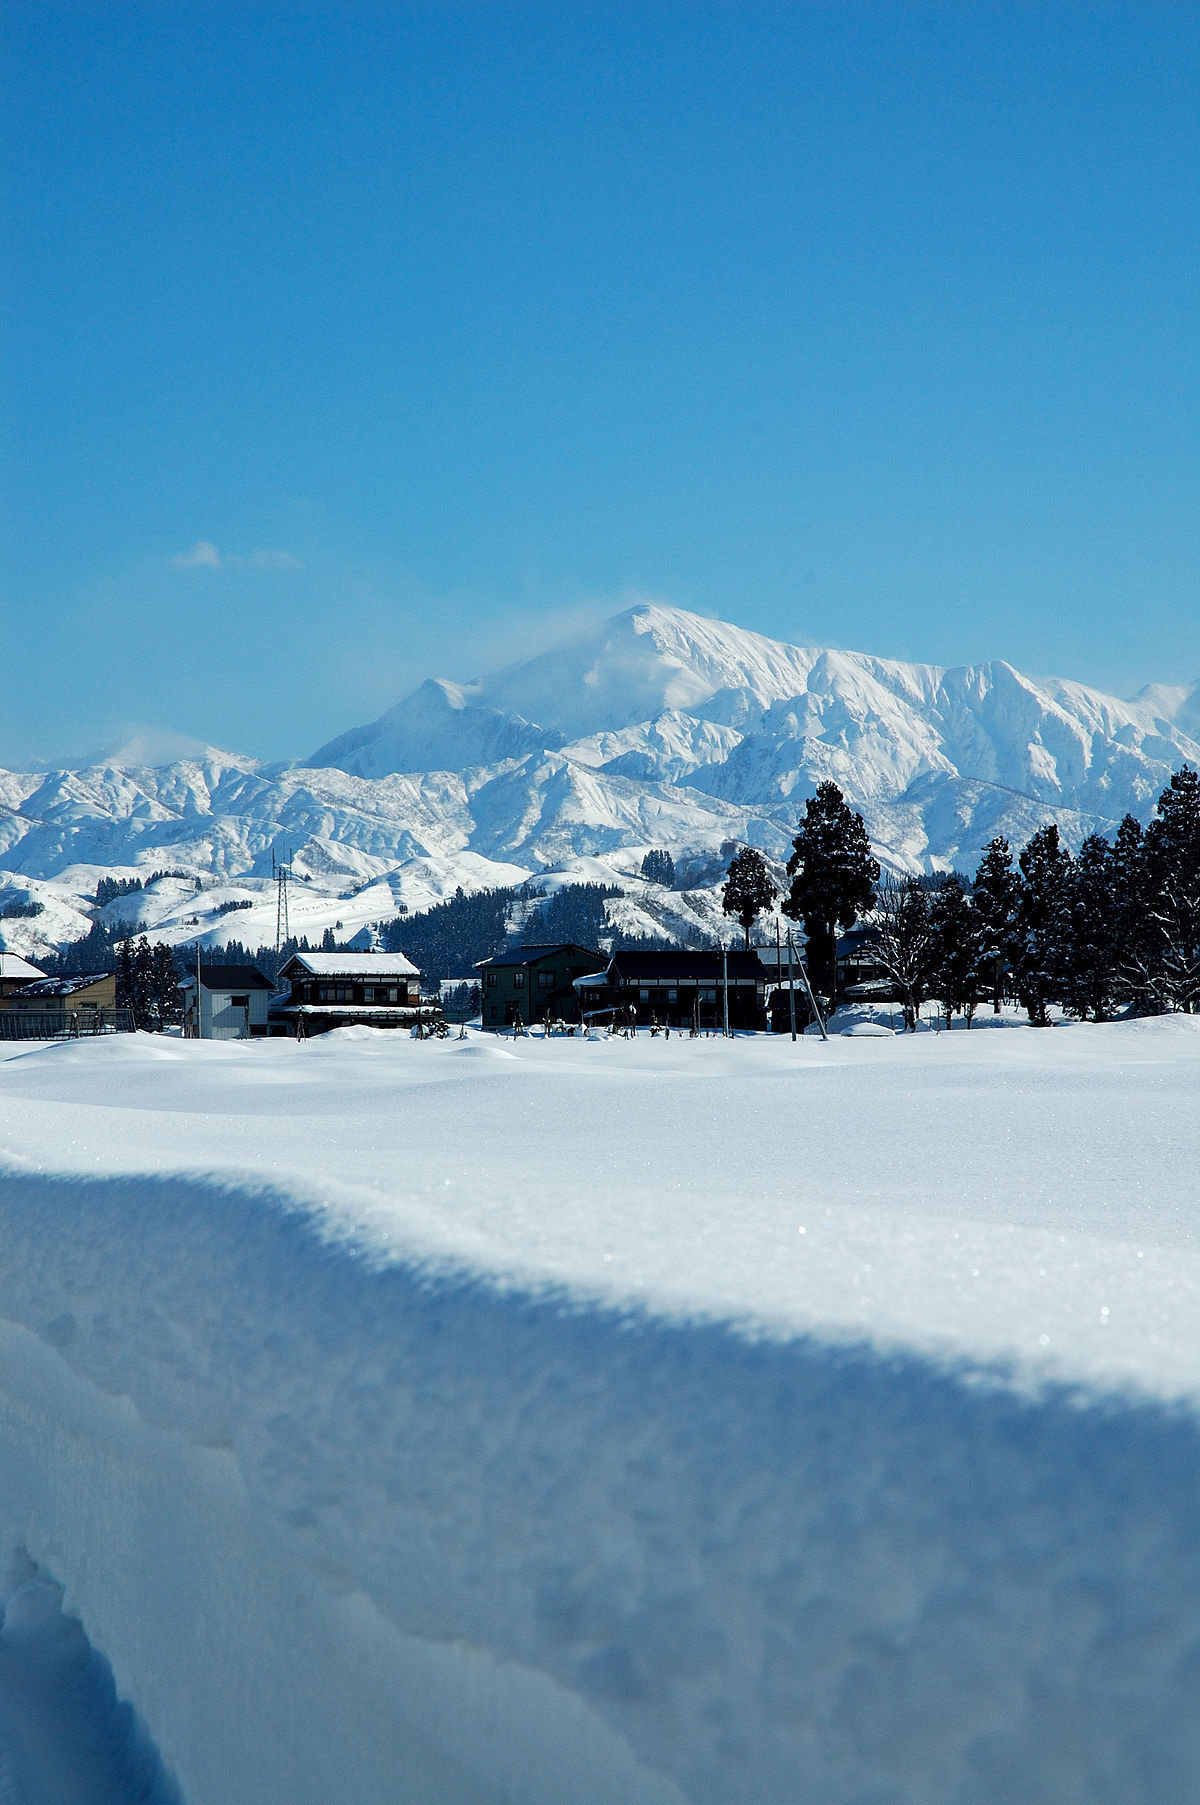 Snow country (Japan) - Wikipedia